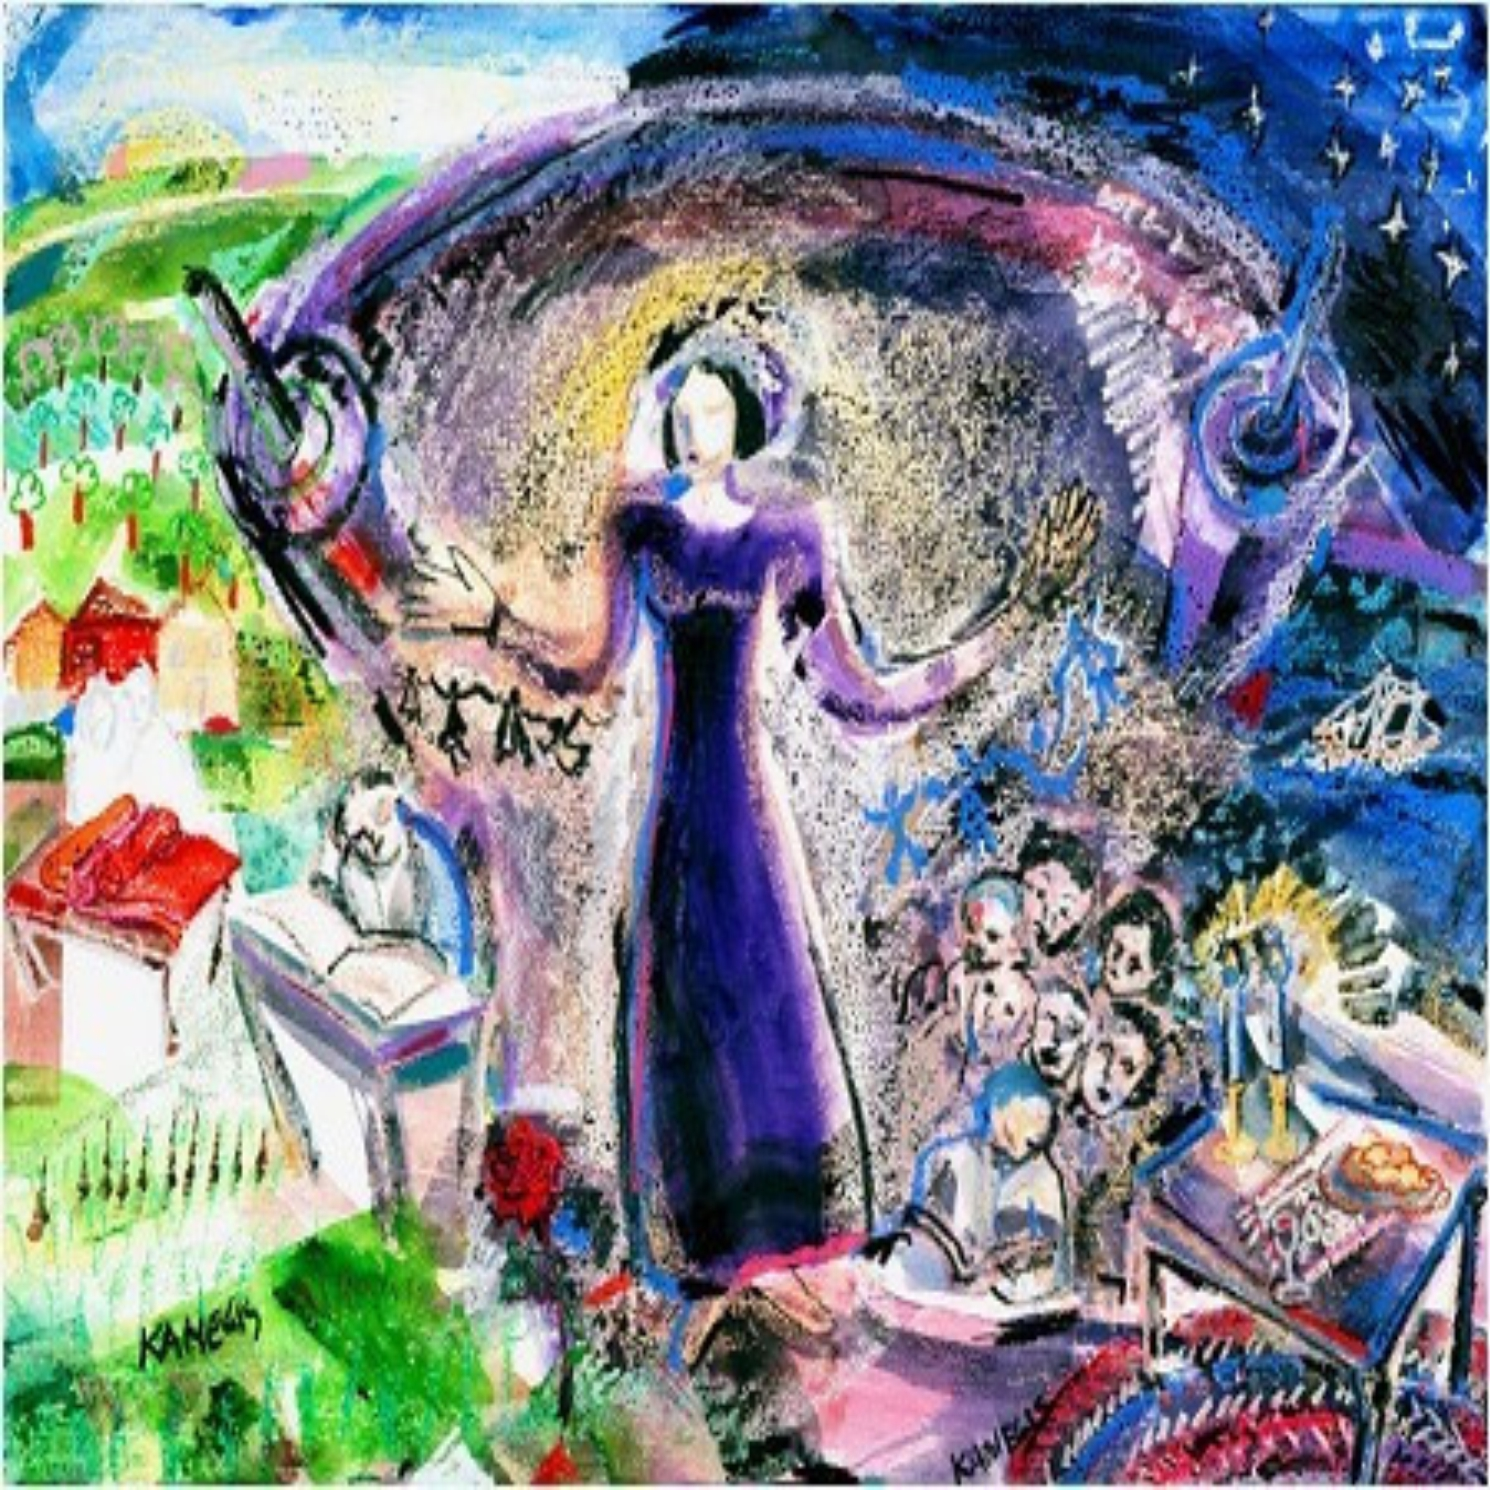 woman of valor essay A woman of valour, who can find – sermon on proverbs 31:10 com/women-of-valor personified as a woman in the book of proverbs an essay.